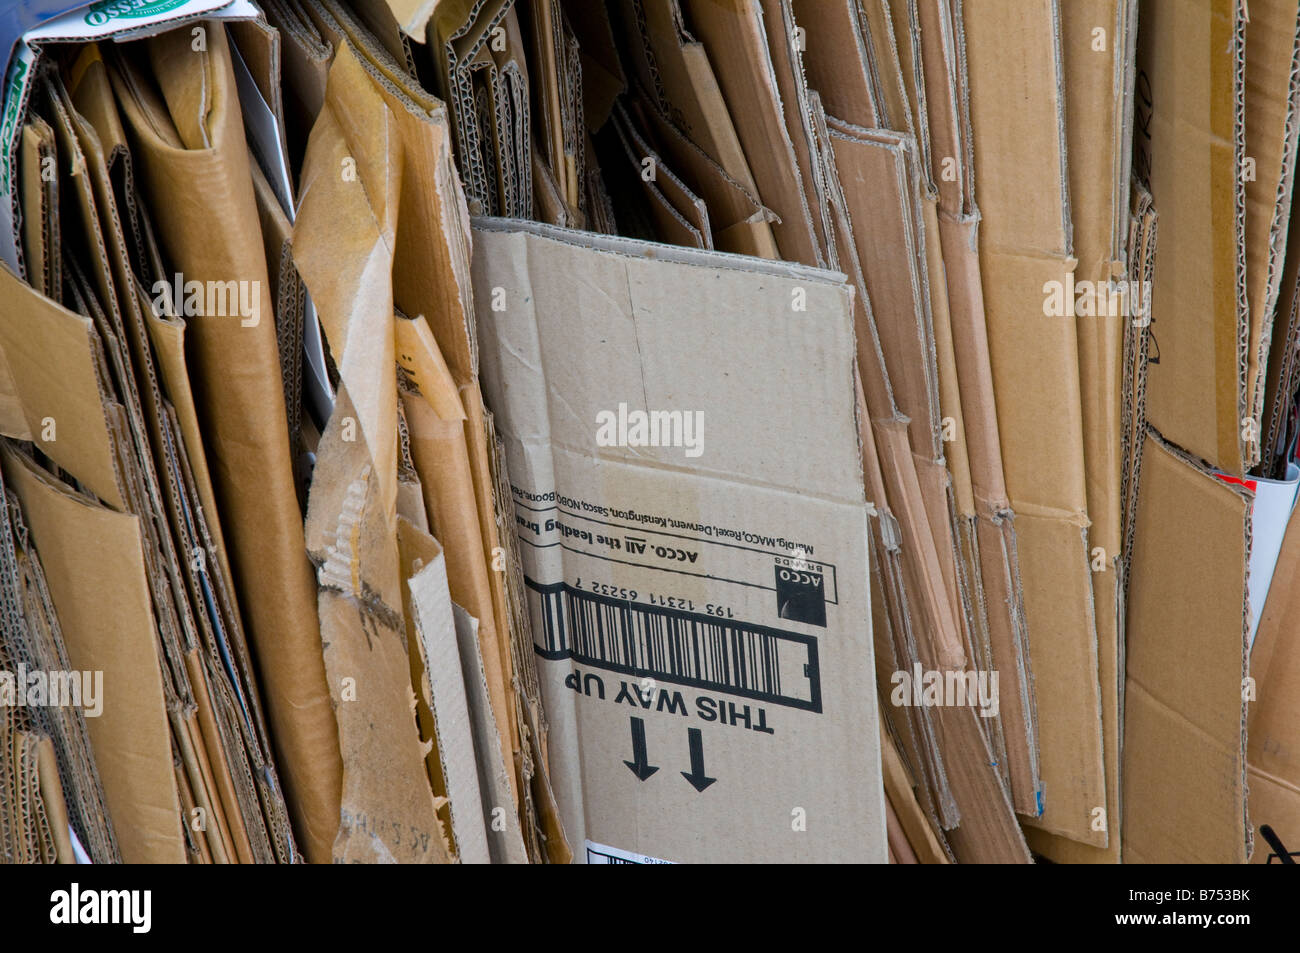 Cardboard packaging for recycling - Stock Image